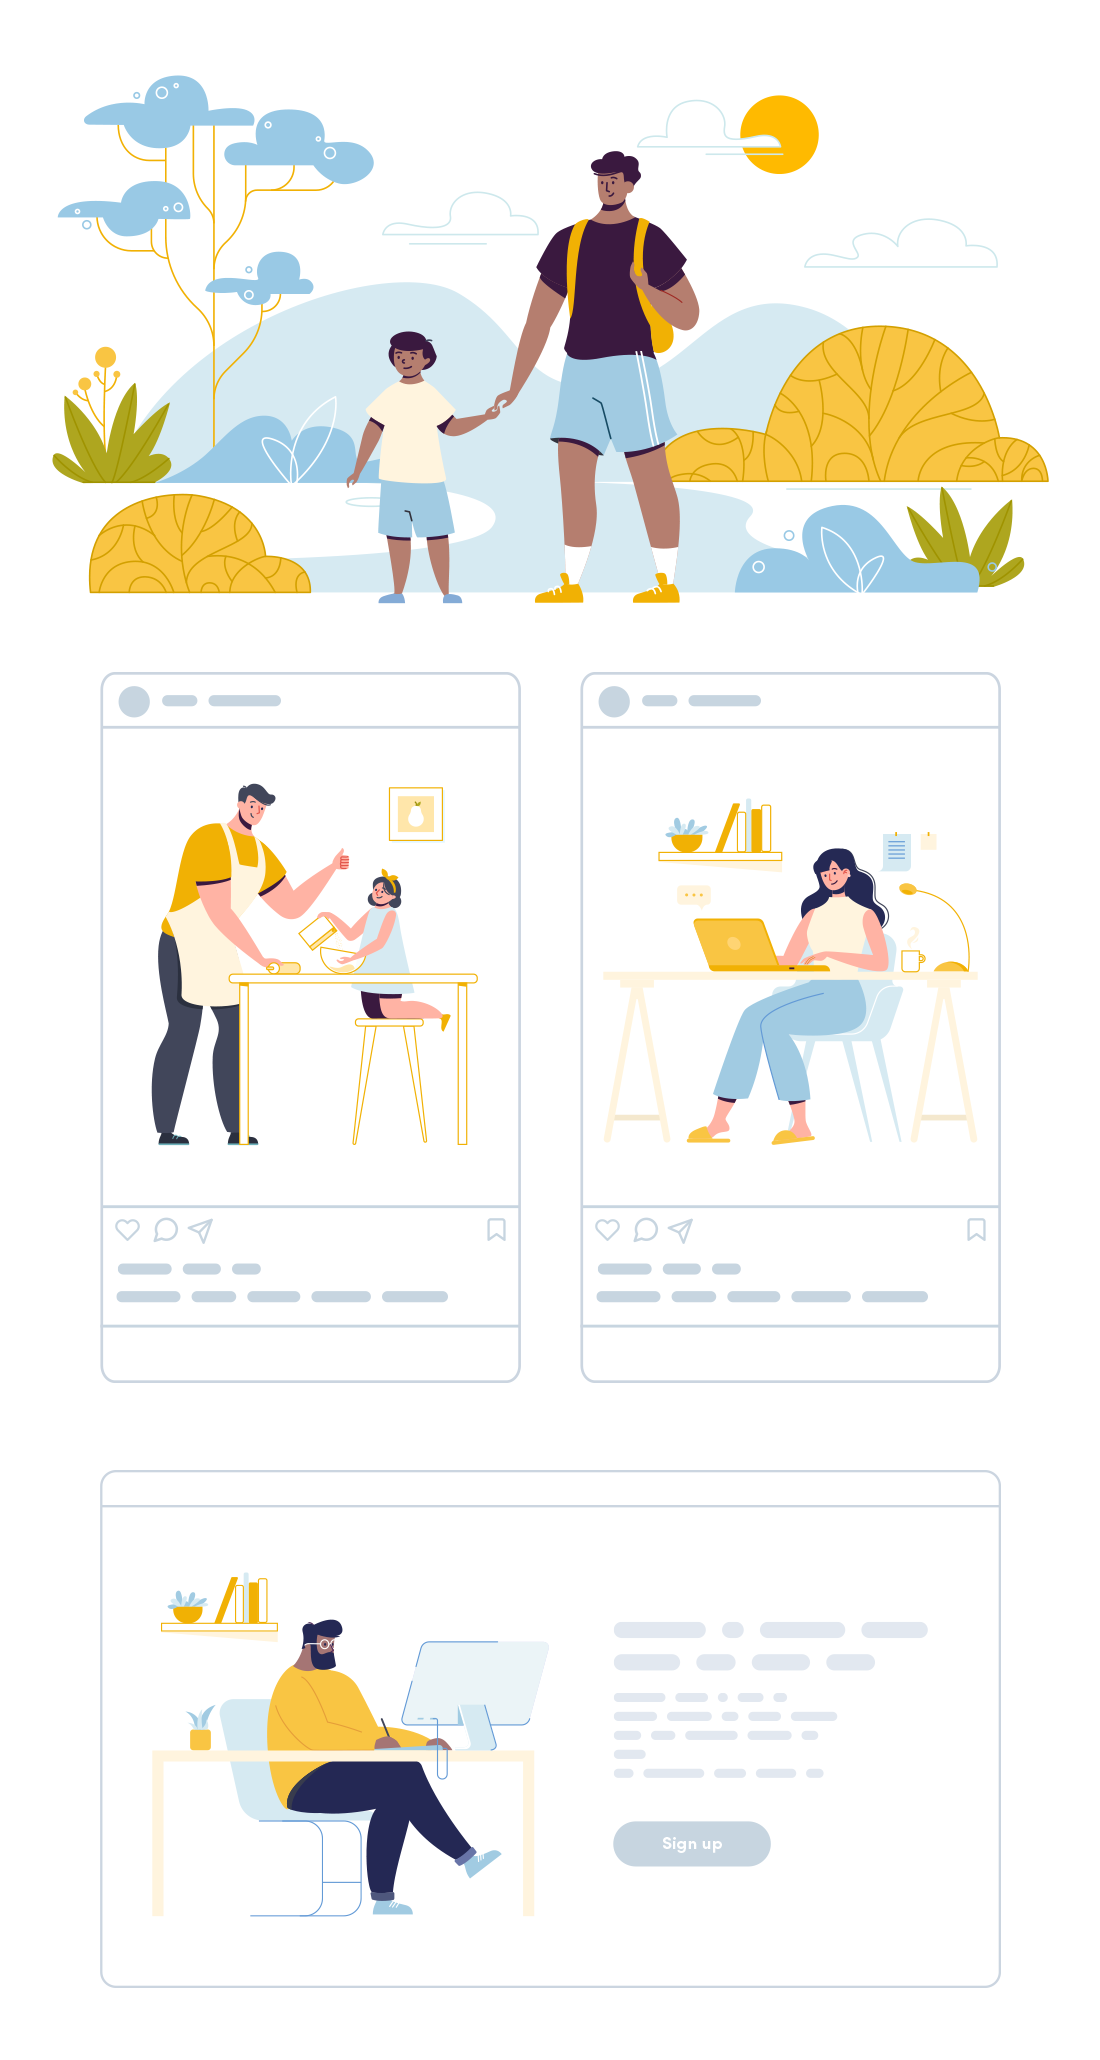 Free vector illustrations of brothers, family, young family, cooking, kitchen, home life, working from home, remote working, designer, home office, walk in a park, hiking, trekking, family activity